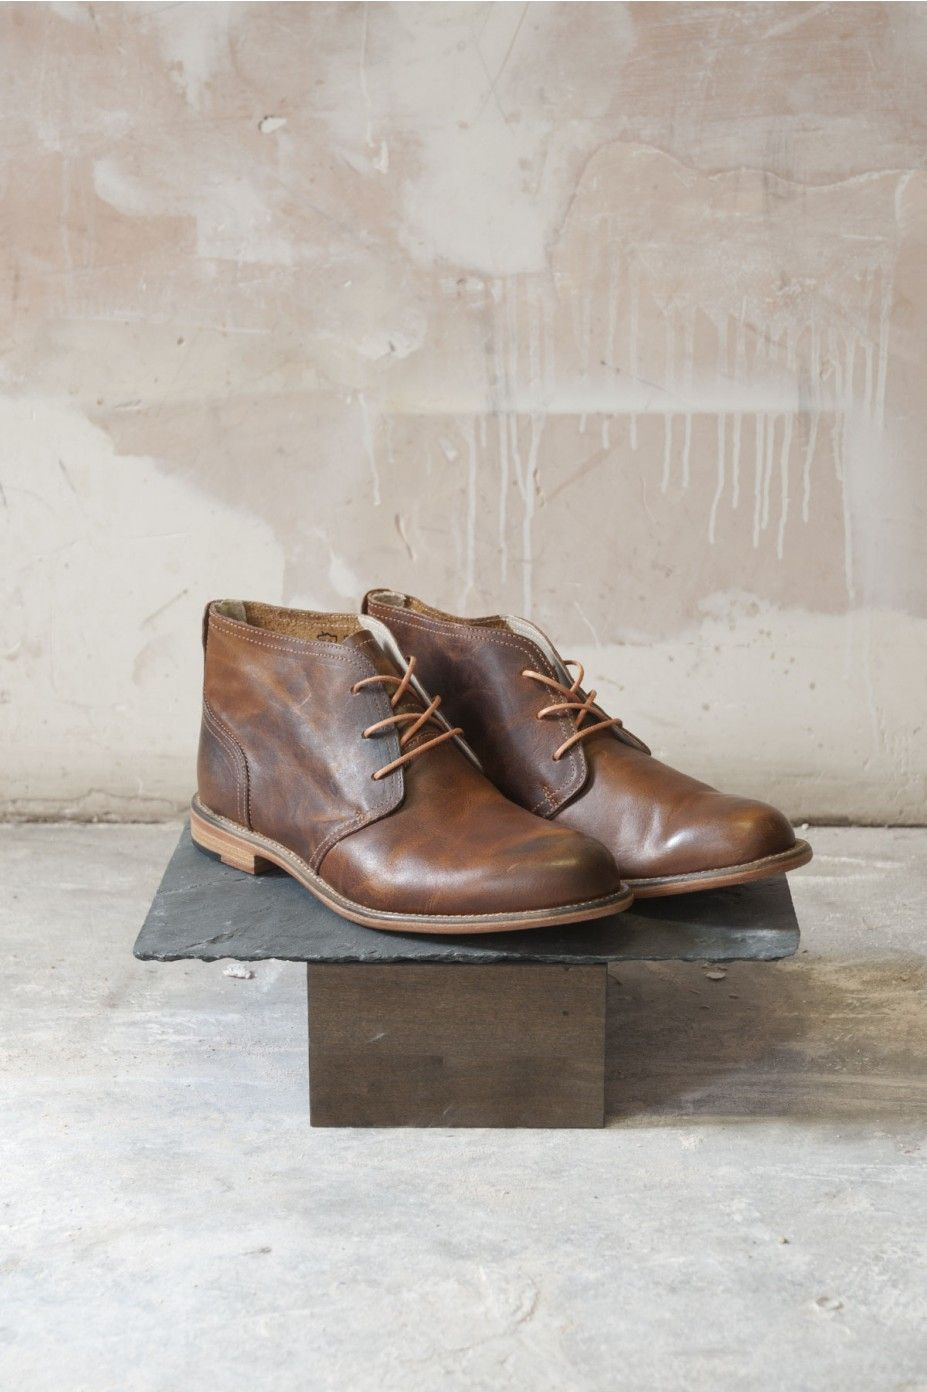 J Shoes Men's Leather Boot Monarch Glow : want it badly.  Black also pls.